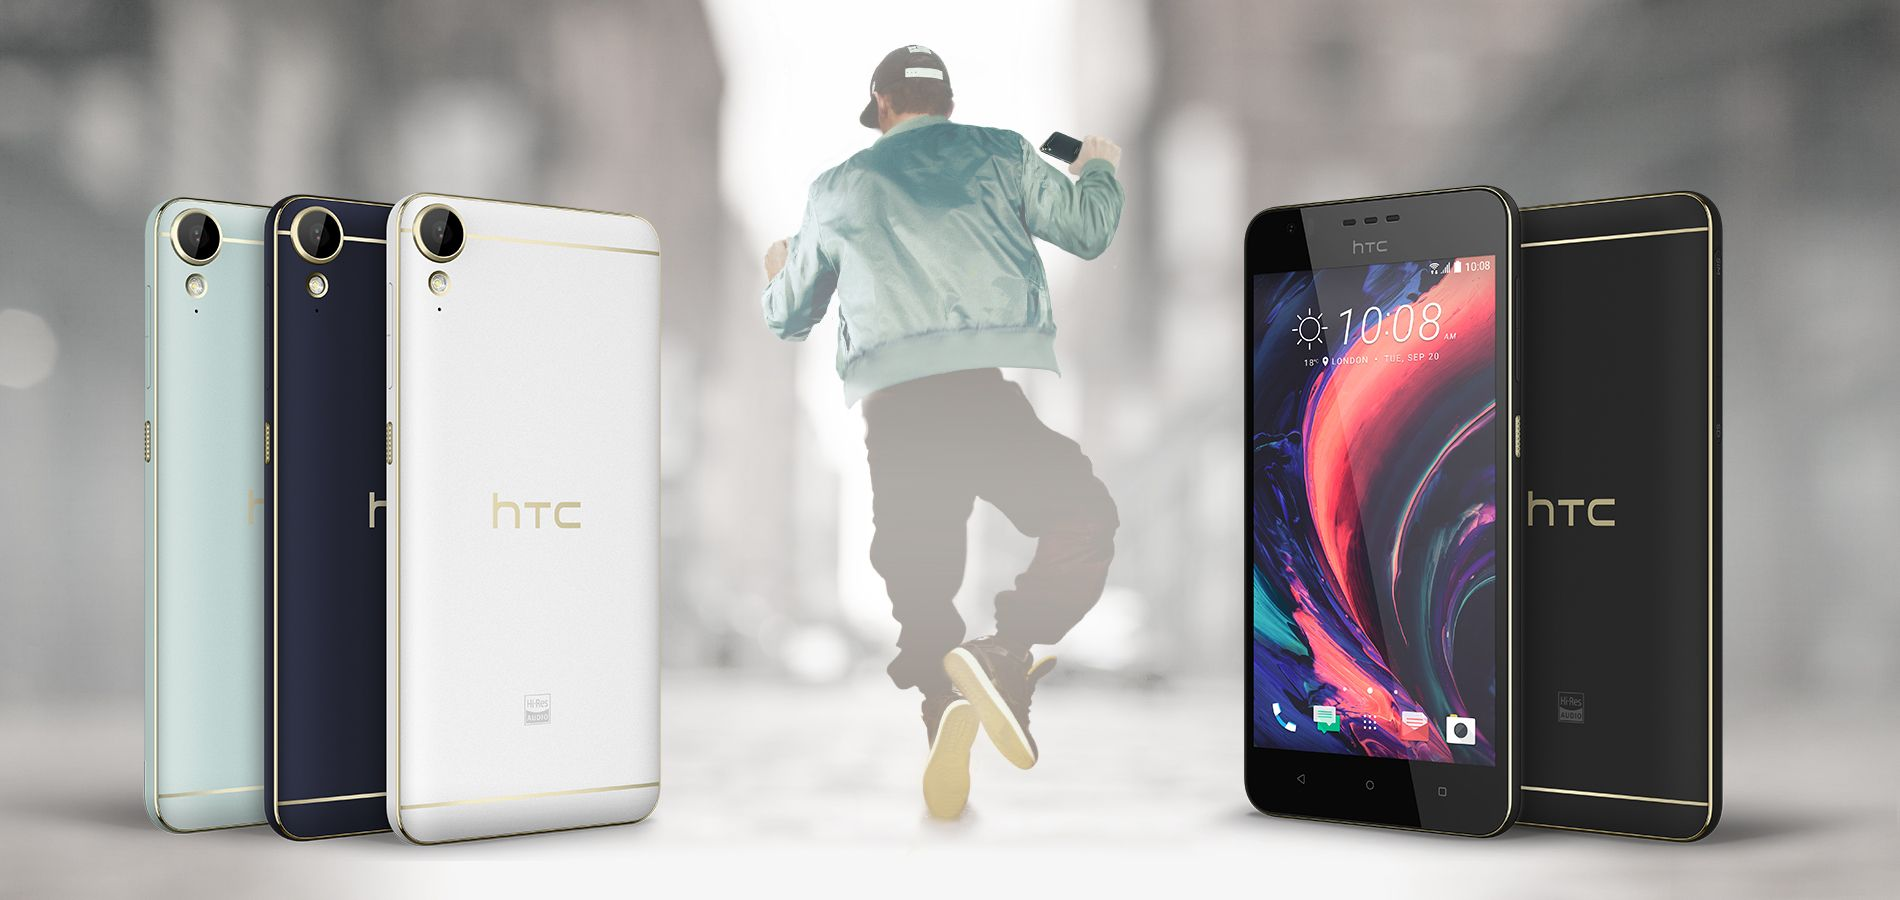 Desire 10 Lifestyle (Polar white)